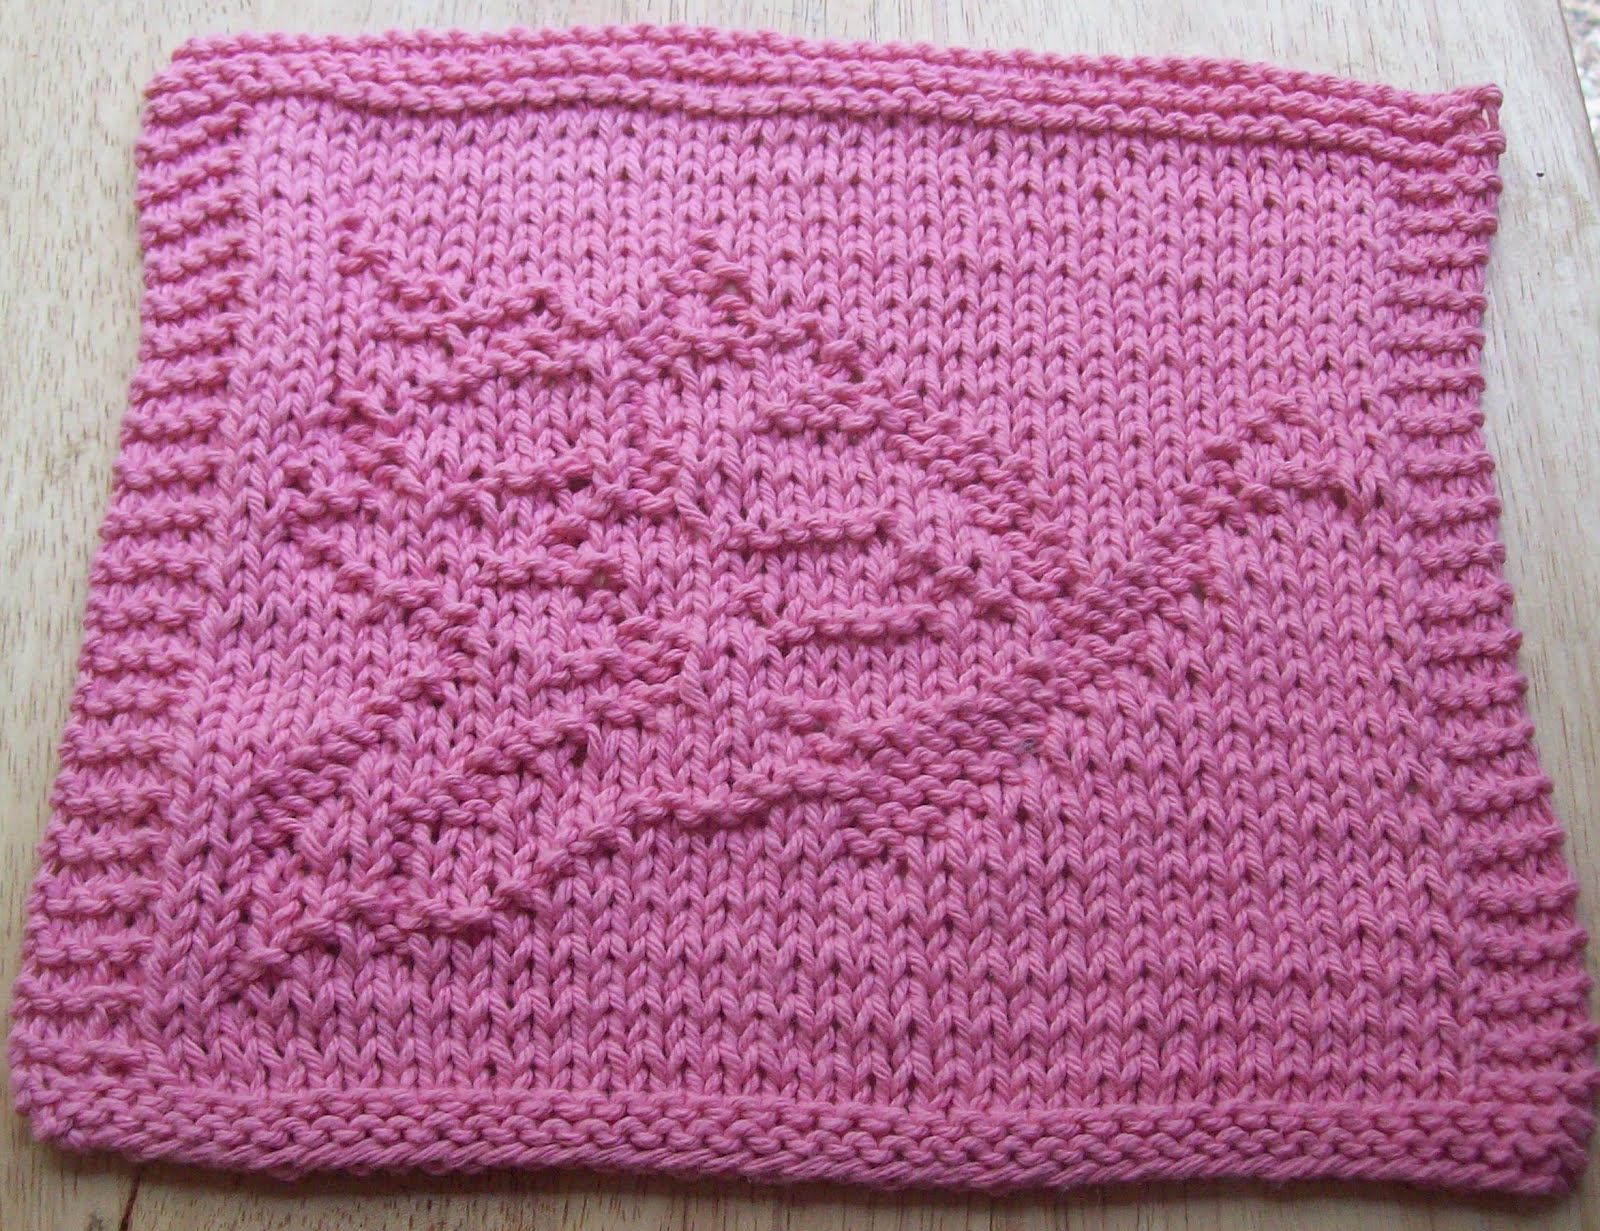 Knitted Butterfly Dishcloth Pattern Digknitty Designs Another Butterfly Knit Dishcloth Pattern